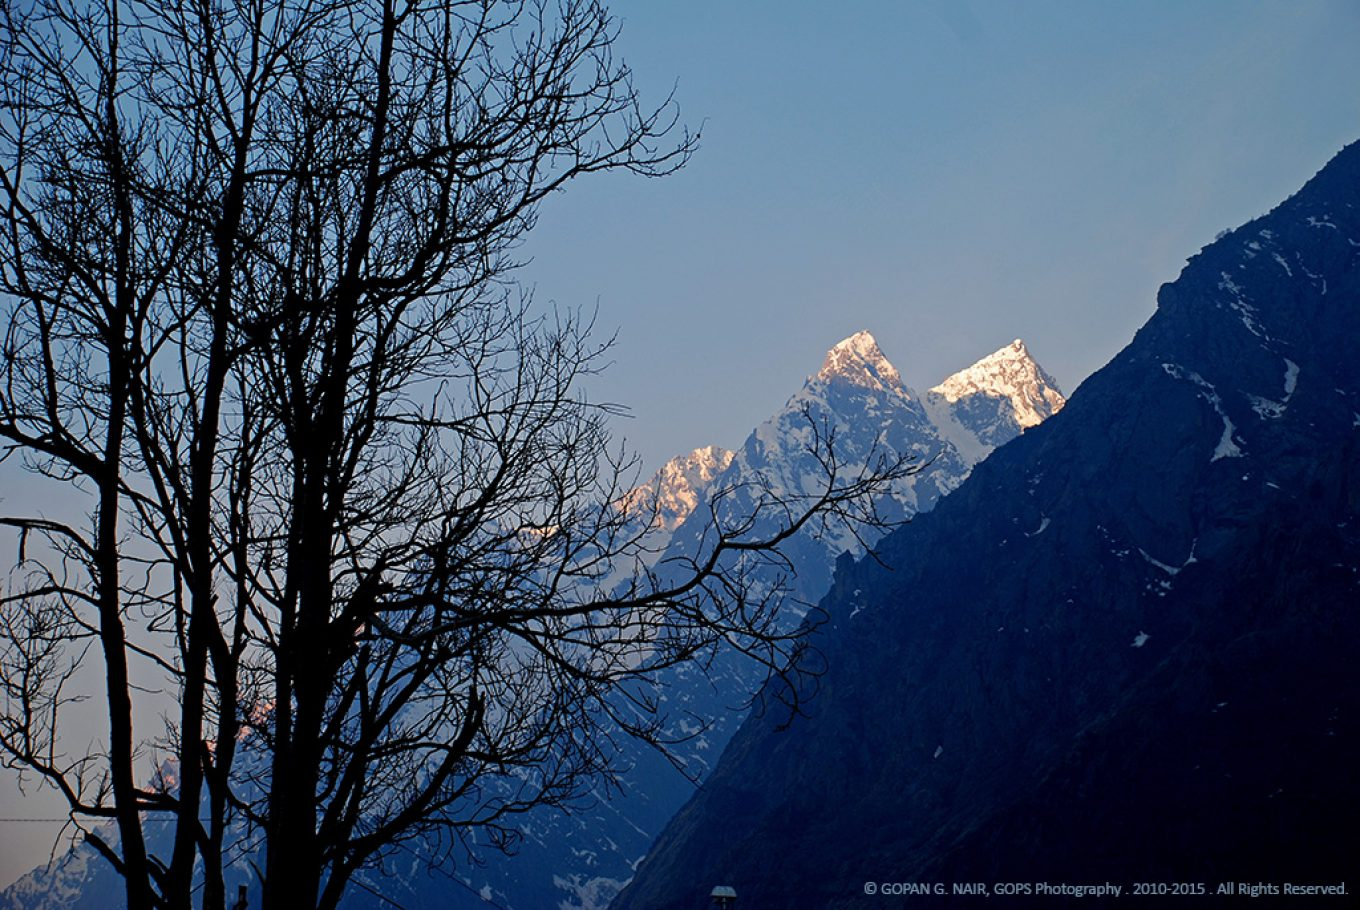 MORNING VIEWS FROM BADRINATH